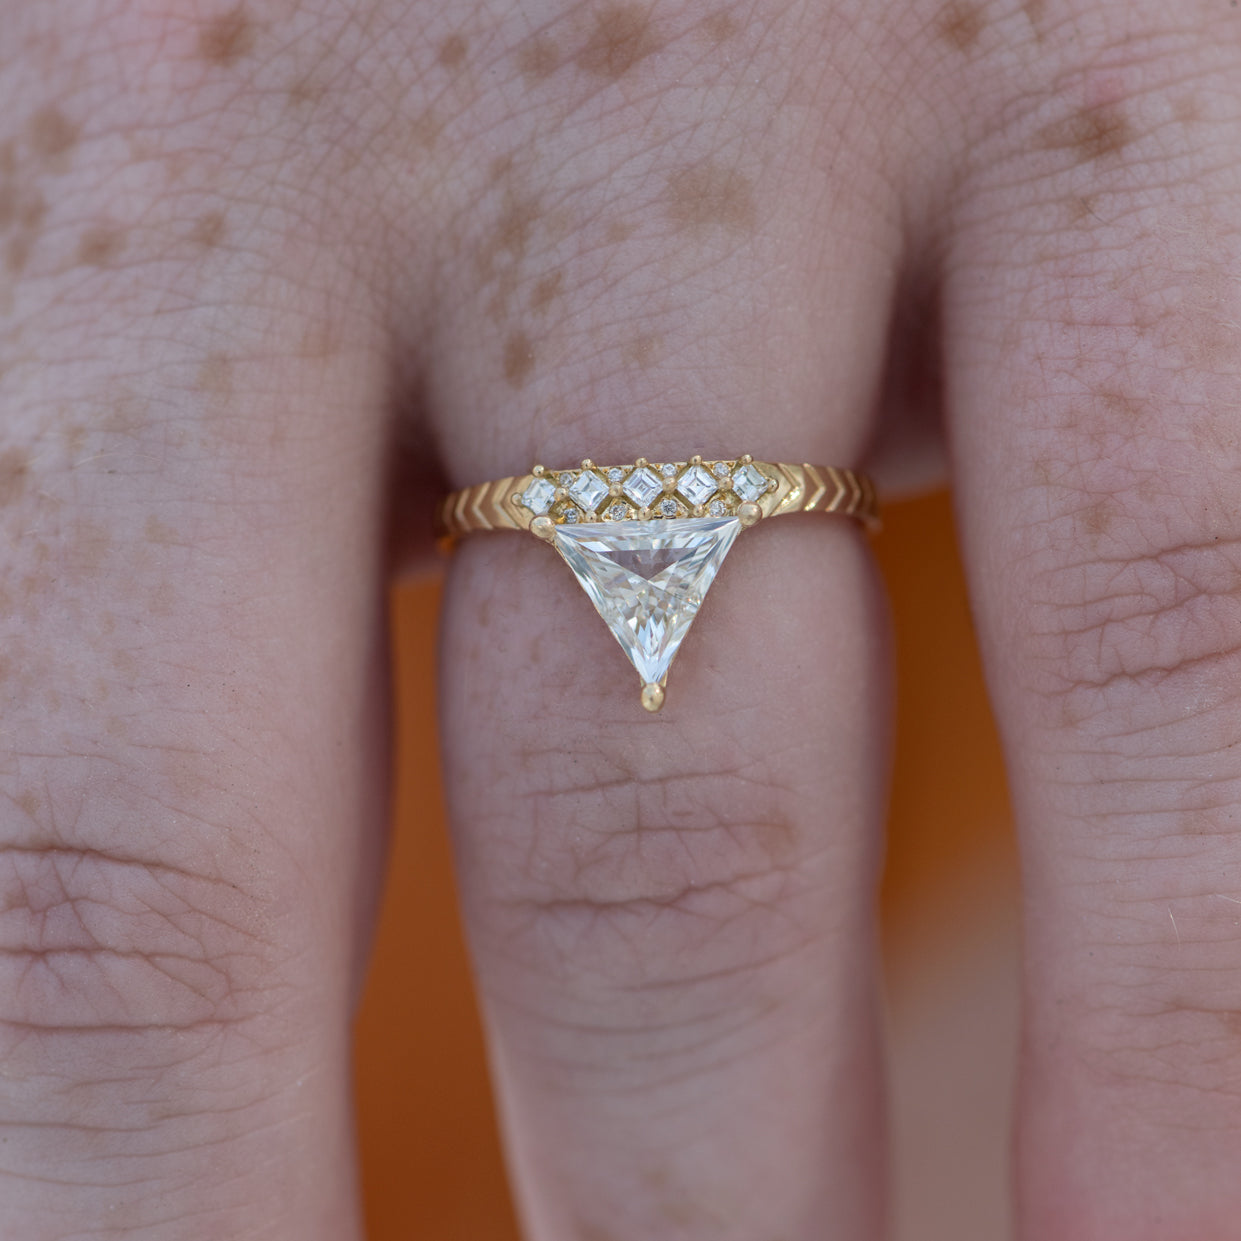 Detailed-Triangle-Diamond-Ring-with-Gold-Pattern-0.5-carat-top-shot